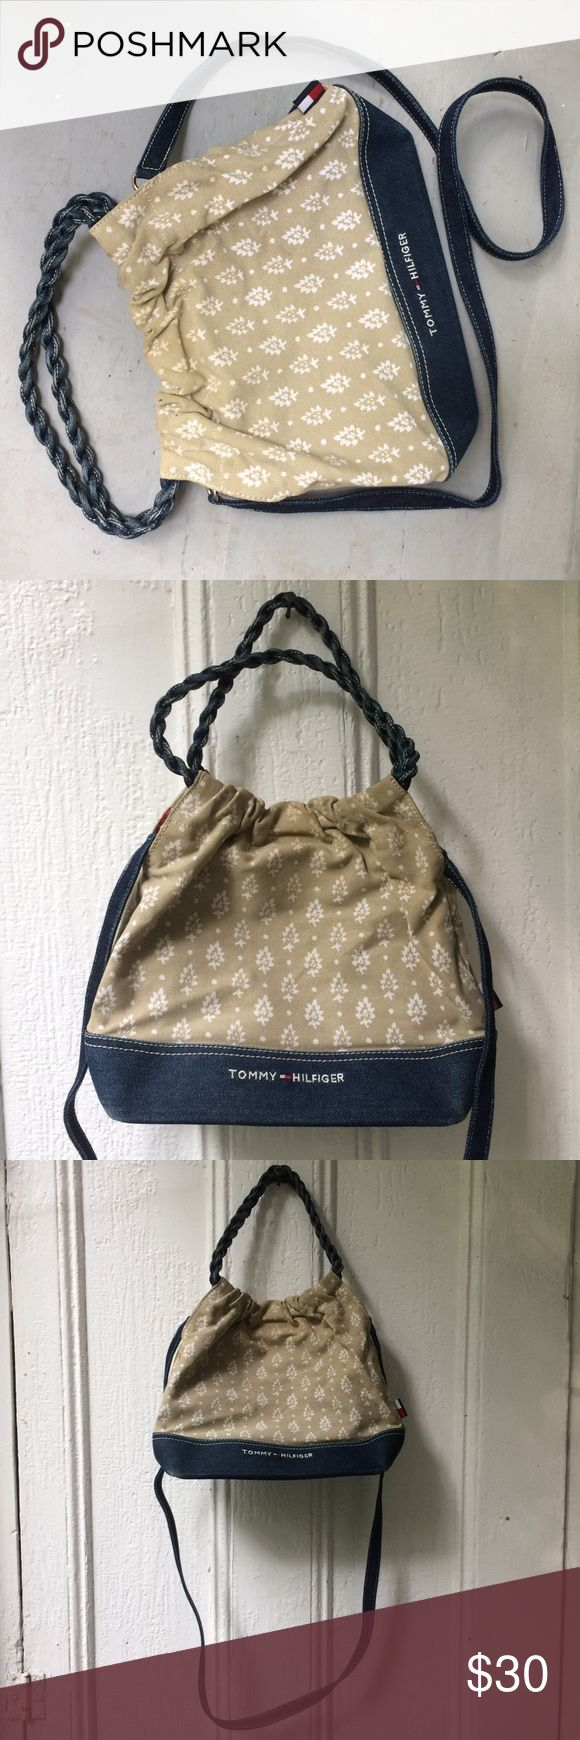 Tommy Hilfiger denim & canvas crossbody purse A very cute 90's-style Tommy Hilfiger purse with twisted denim rope circular handles, an adjustable denim strap, and roomy canvas/denim small tote with interior zipper pocket and single magnet closure. Sweet white kaki floral print design. Fully lined in classic red. Barely used and very clean. Tommy Hilfiger Bags Crossbody Bags